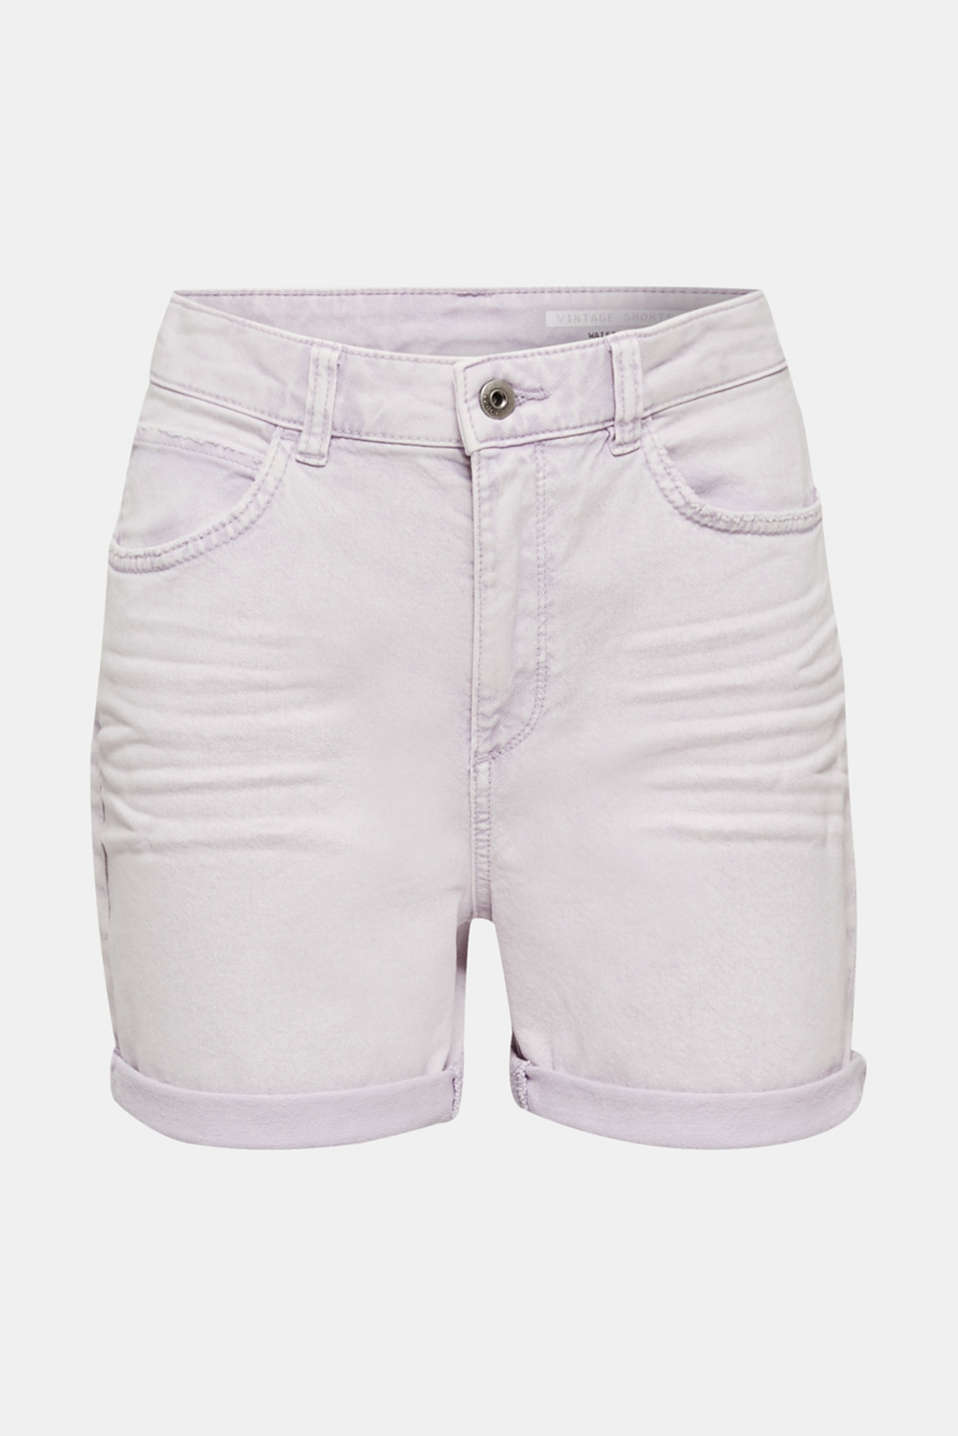 Woven acid-washed shorts, organic cotton, LILAC, detail image number 7